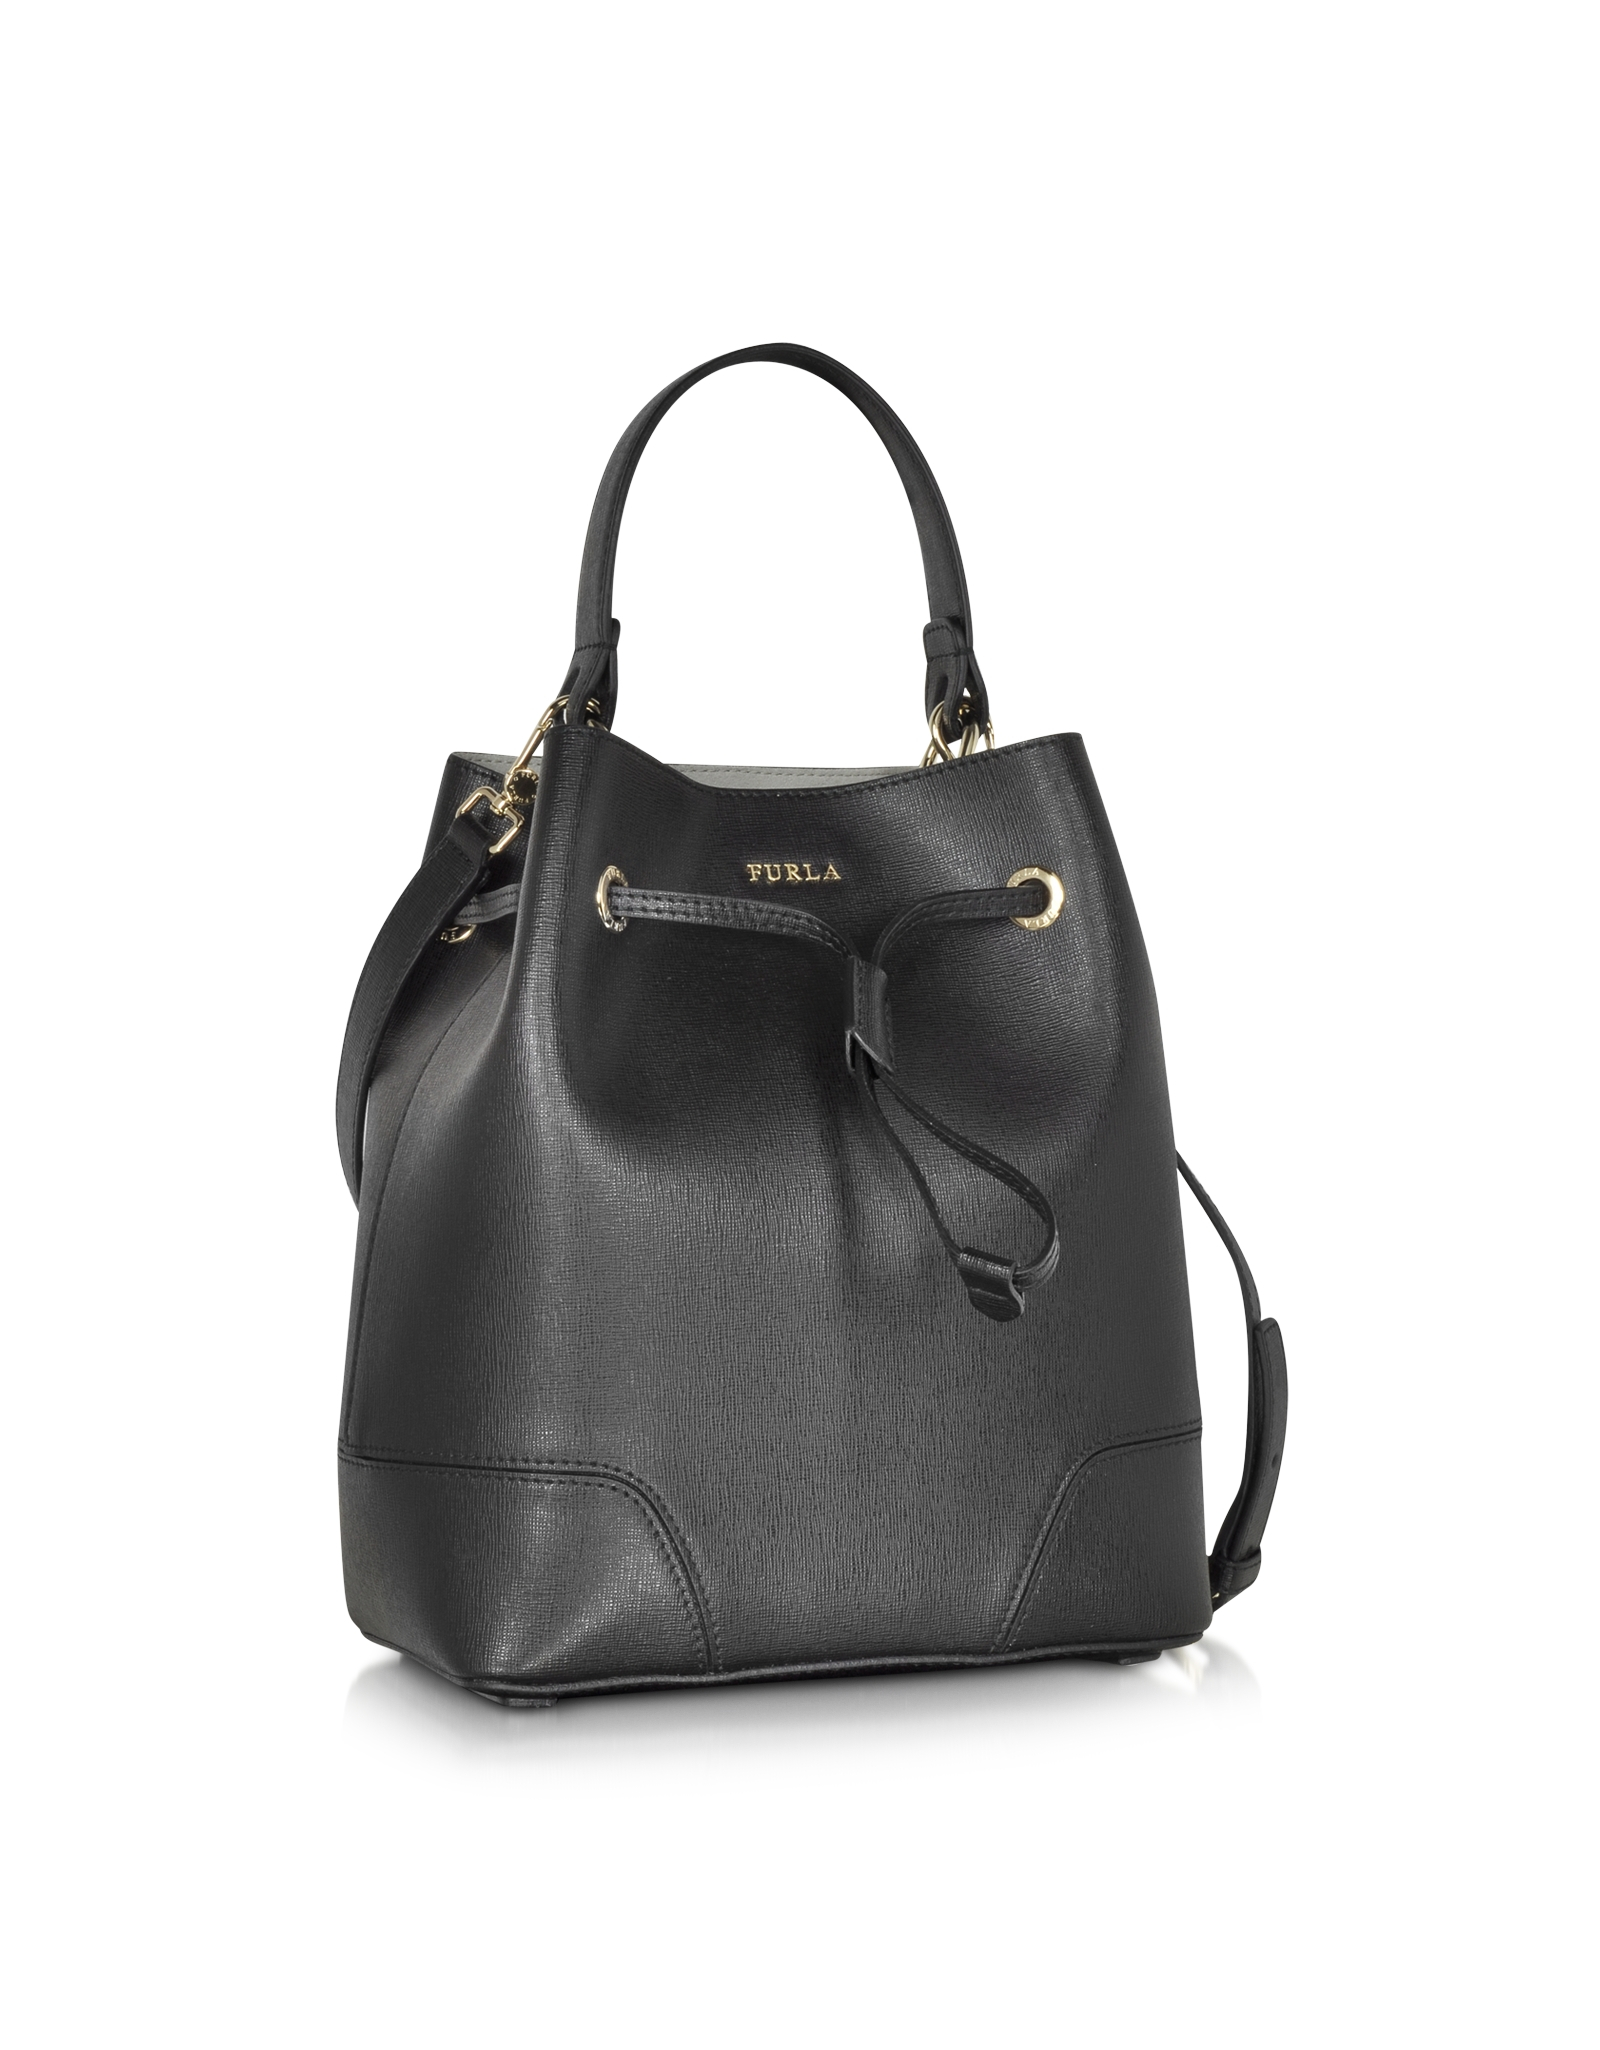 furla stacy onyx leather small bucket bag in black lyst. Black Bedroom Furniture Sets. Home Design Ideas